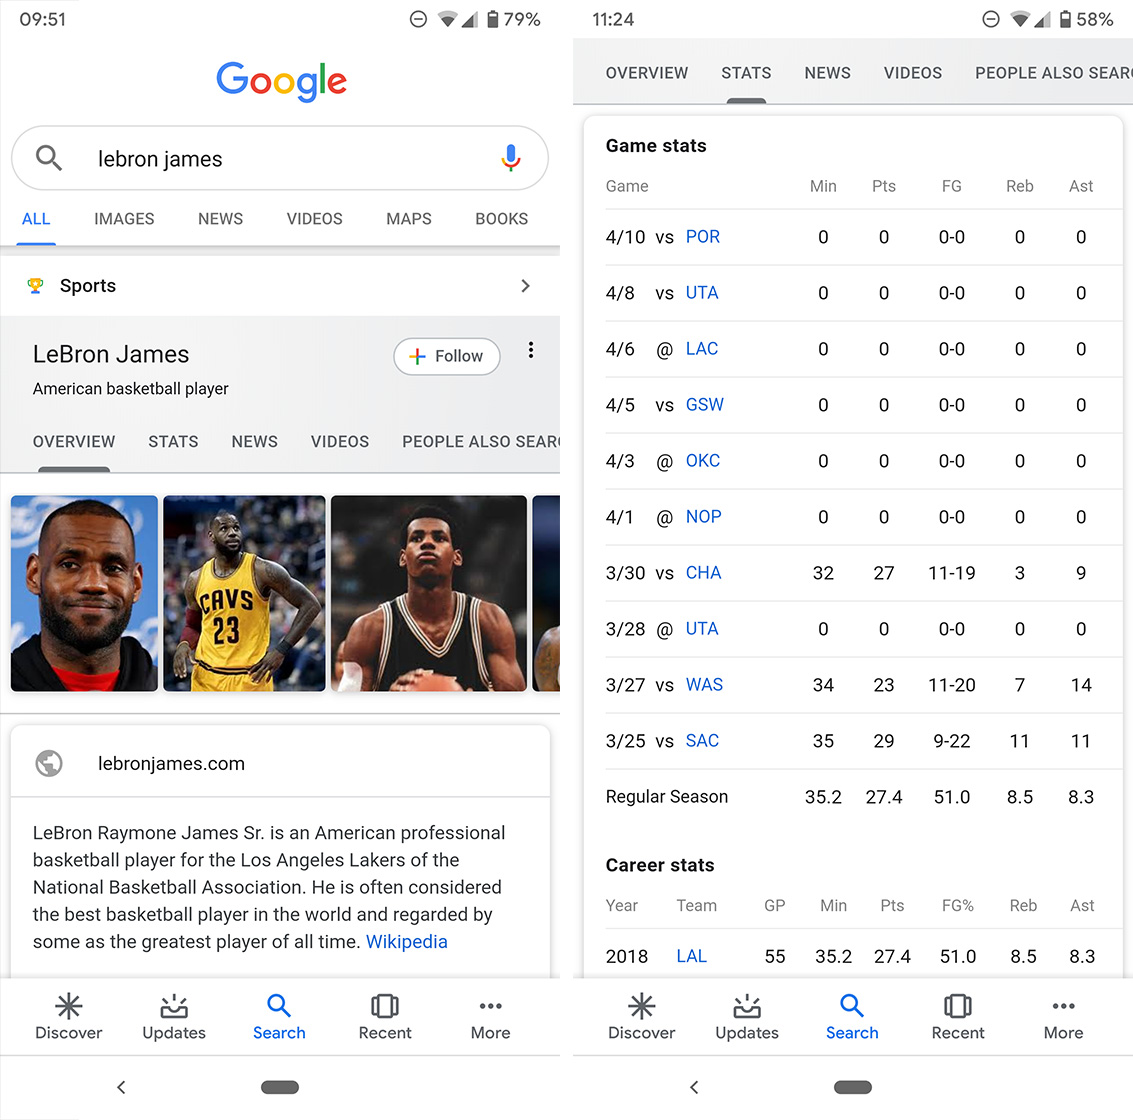 Google search athlete card